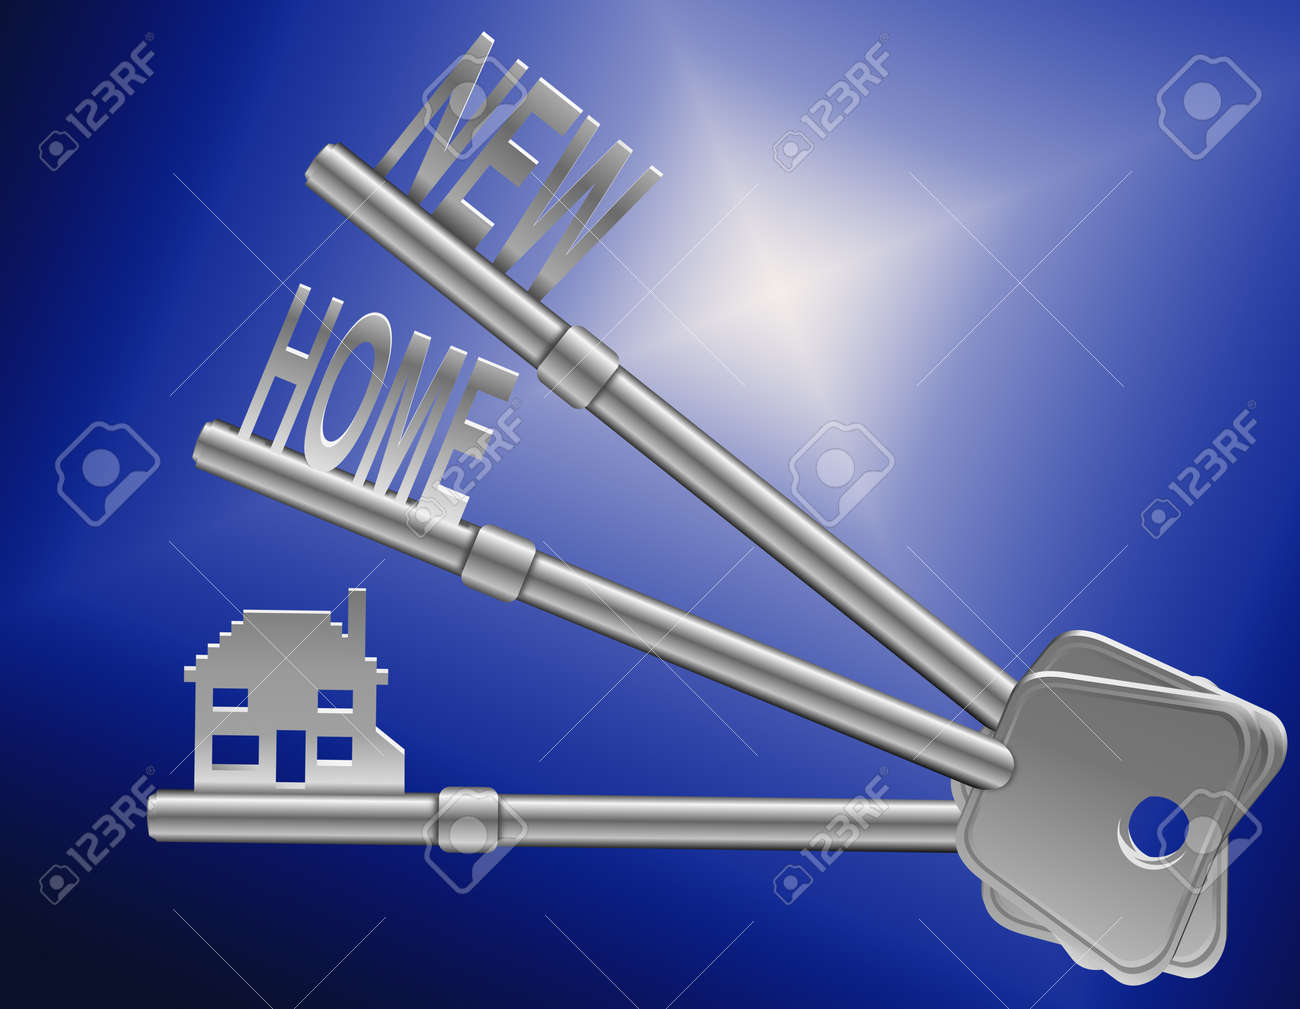 Illustration depicting two keys with a Stock Illustration - 11987326